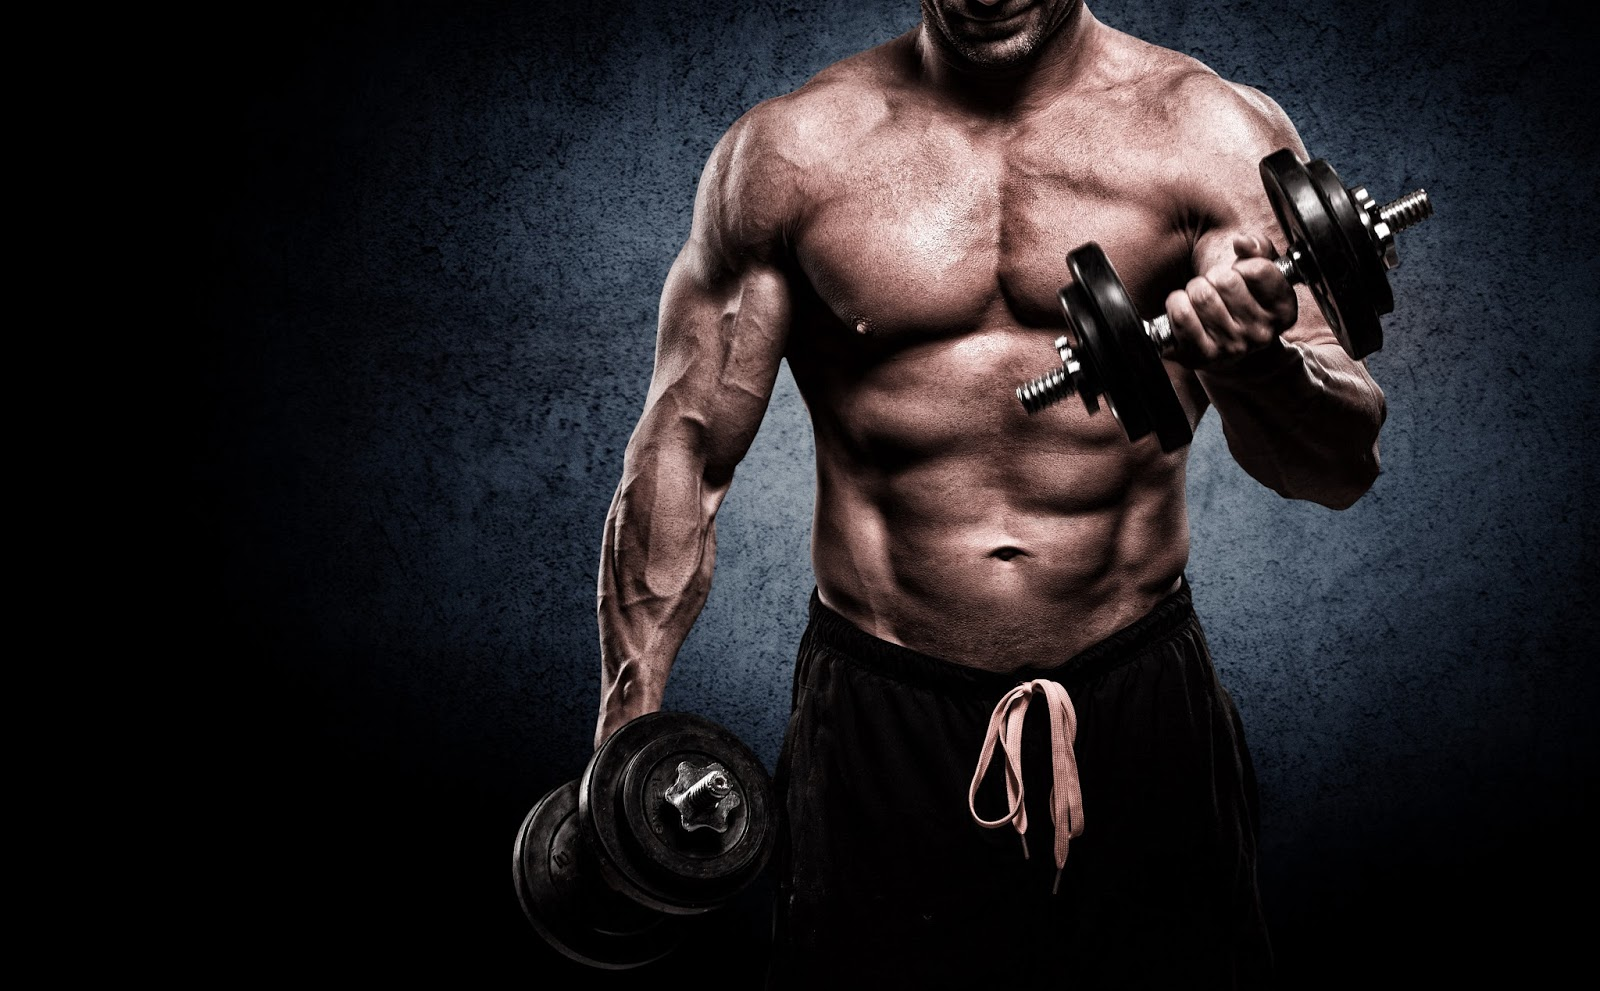 Ripped Bodies Workout Wallpapers HD